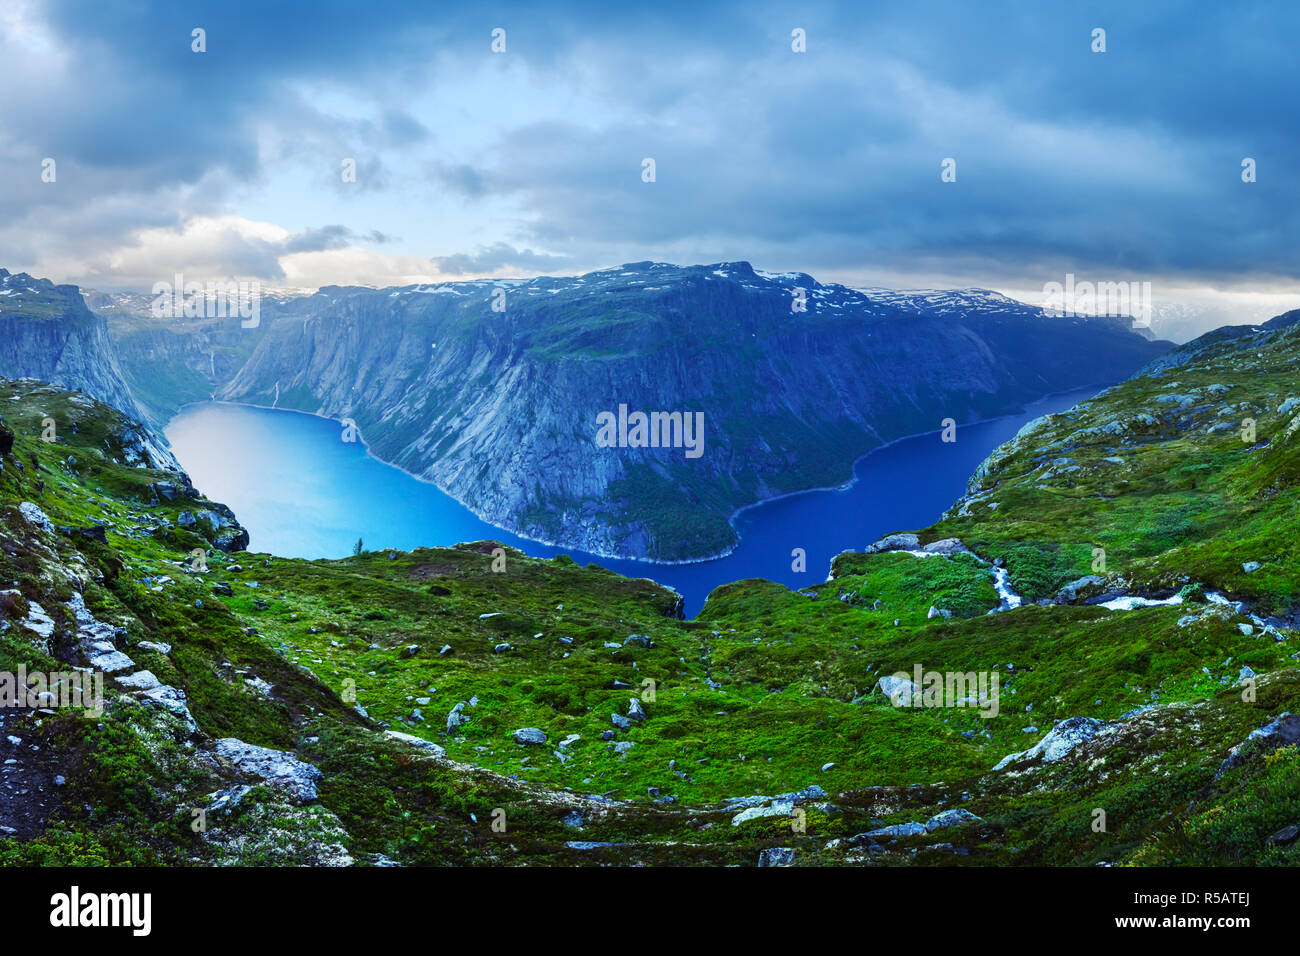 Panorama of Ringedalsvatnet lake near Trolltunga rock - most spectacular and famous scenic cliff in Norway - Stock Image